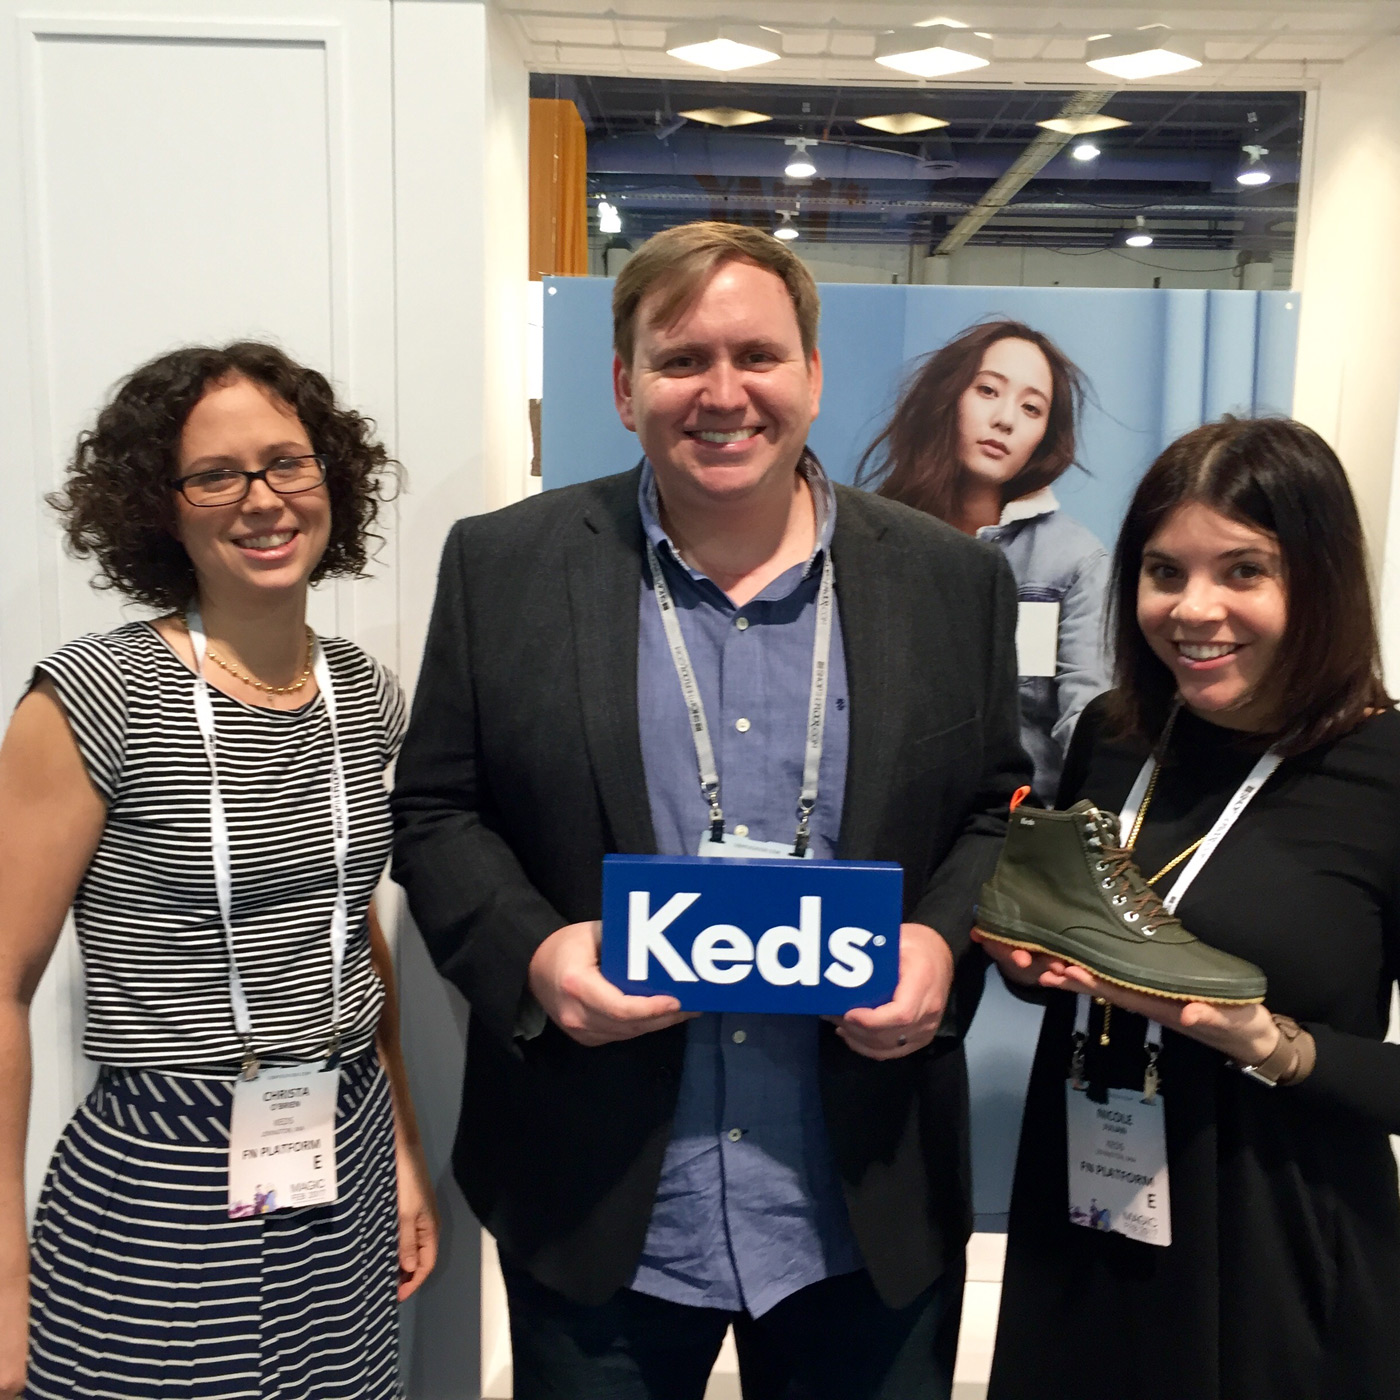 Christa O'Brien, Director of Sales, Keds and Nicole Julian, International Marketing Manager, Keds